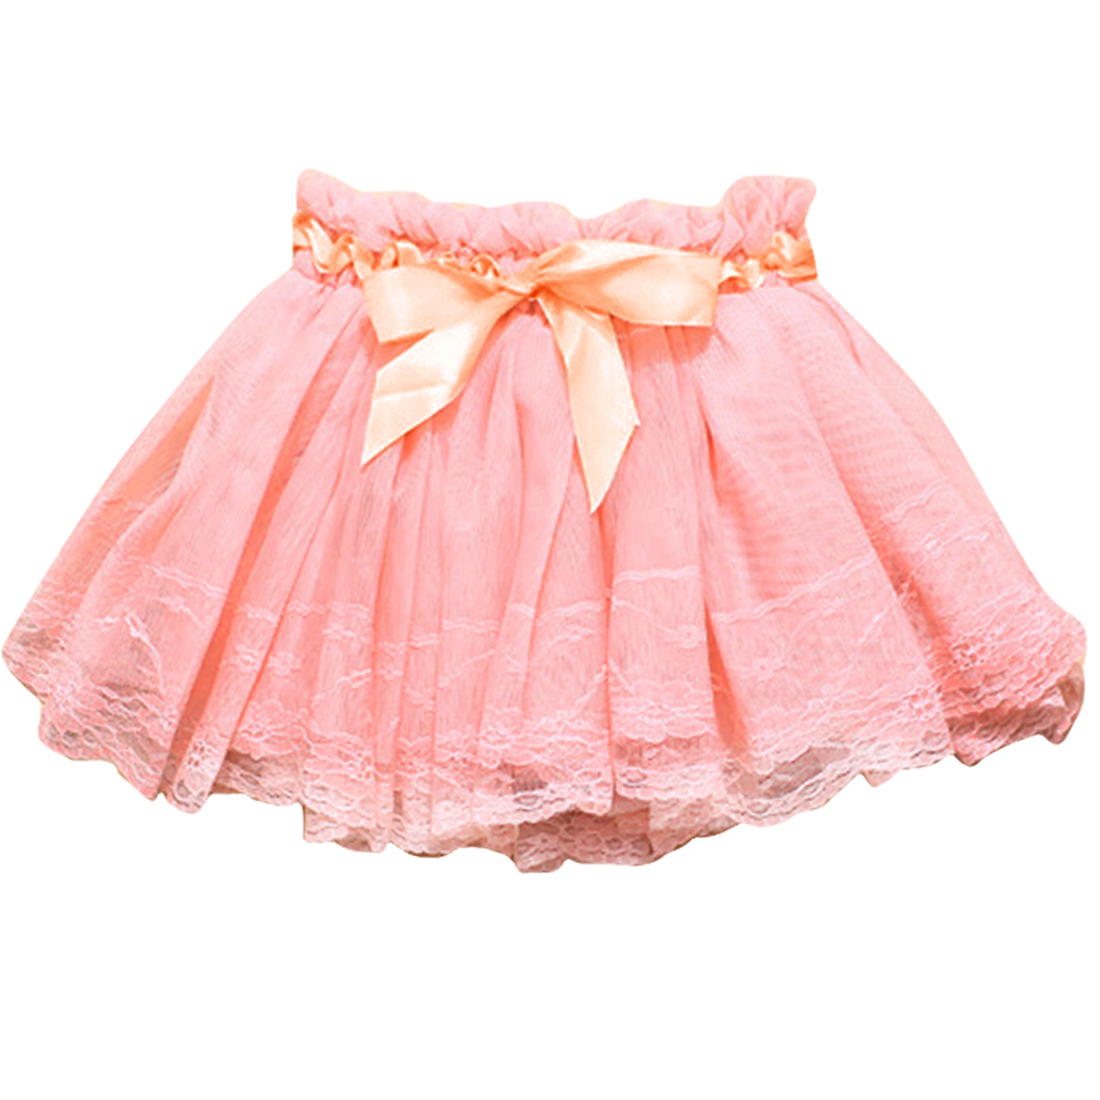 2T Pink Elegant Pleated Design Solid Color Casual Girls Kids Skirt